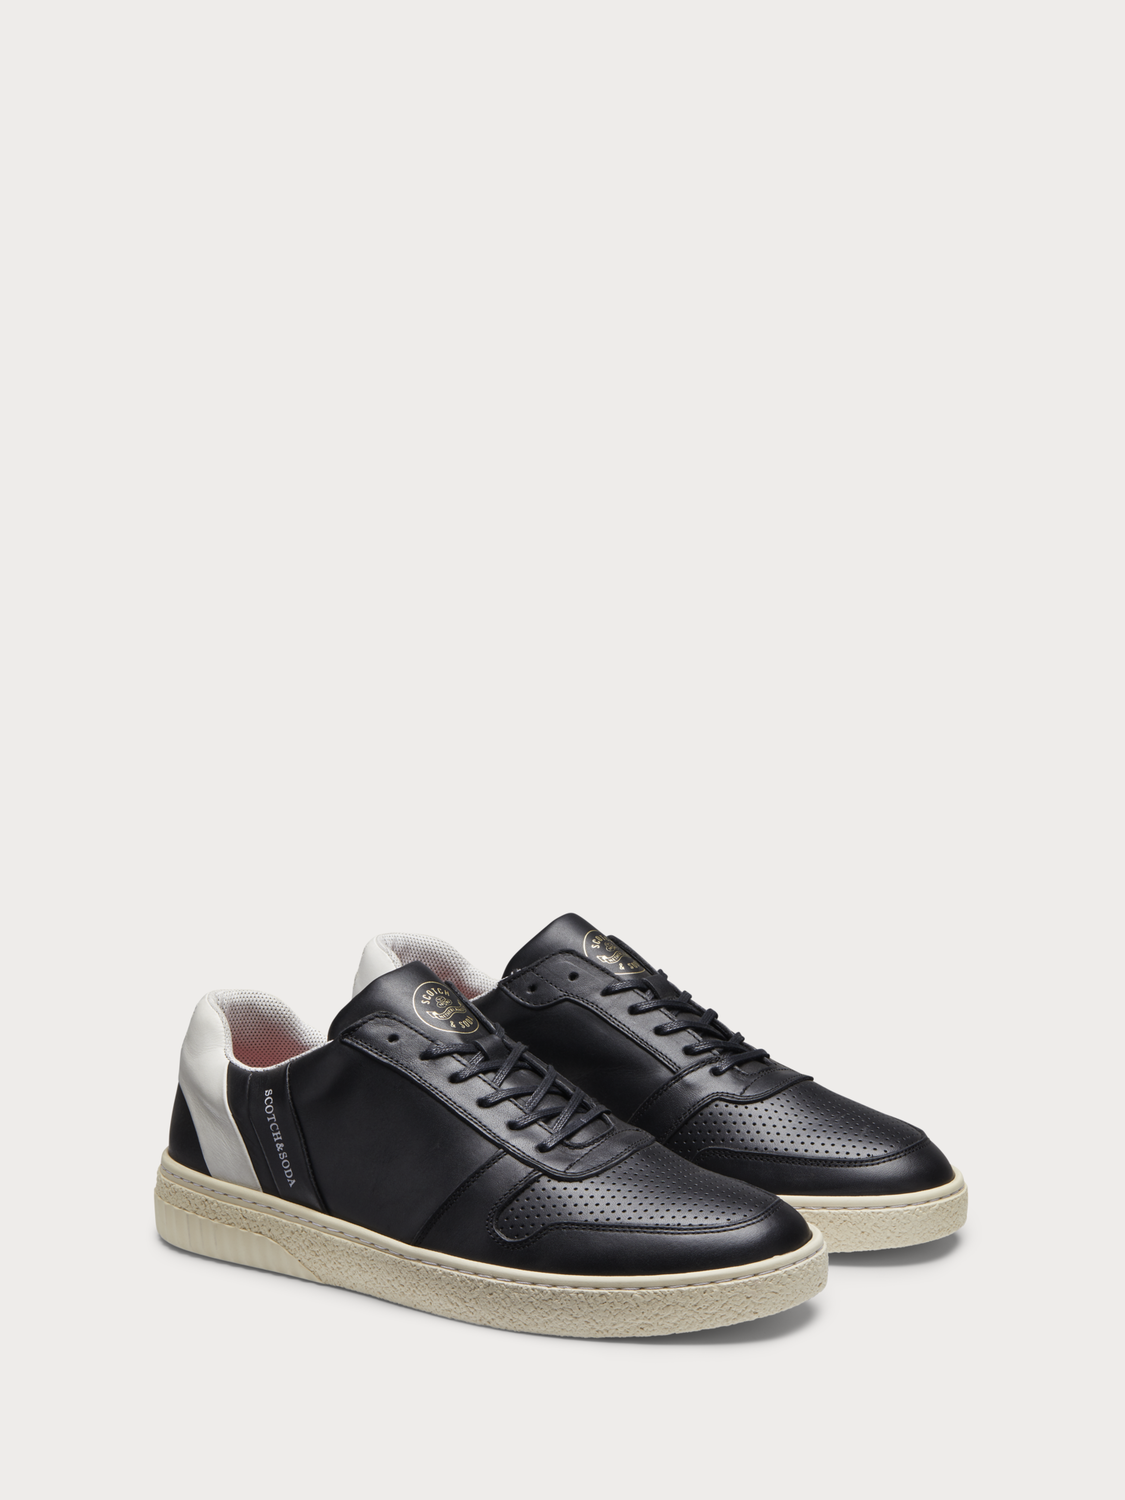 Homme Brilliant - Sneakers en cuir